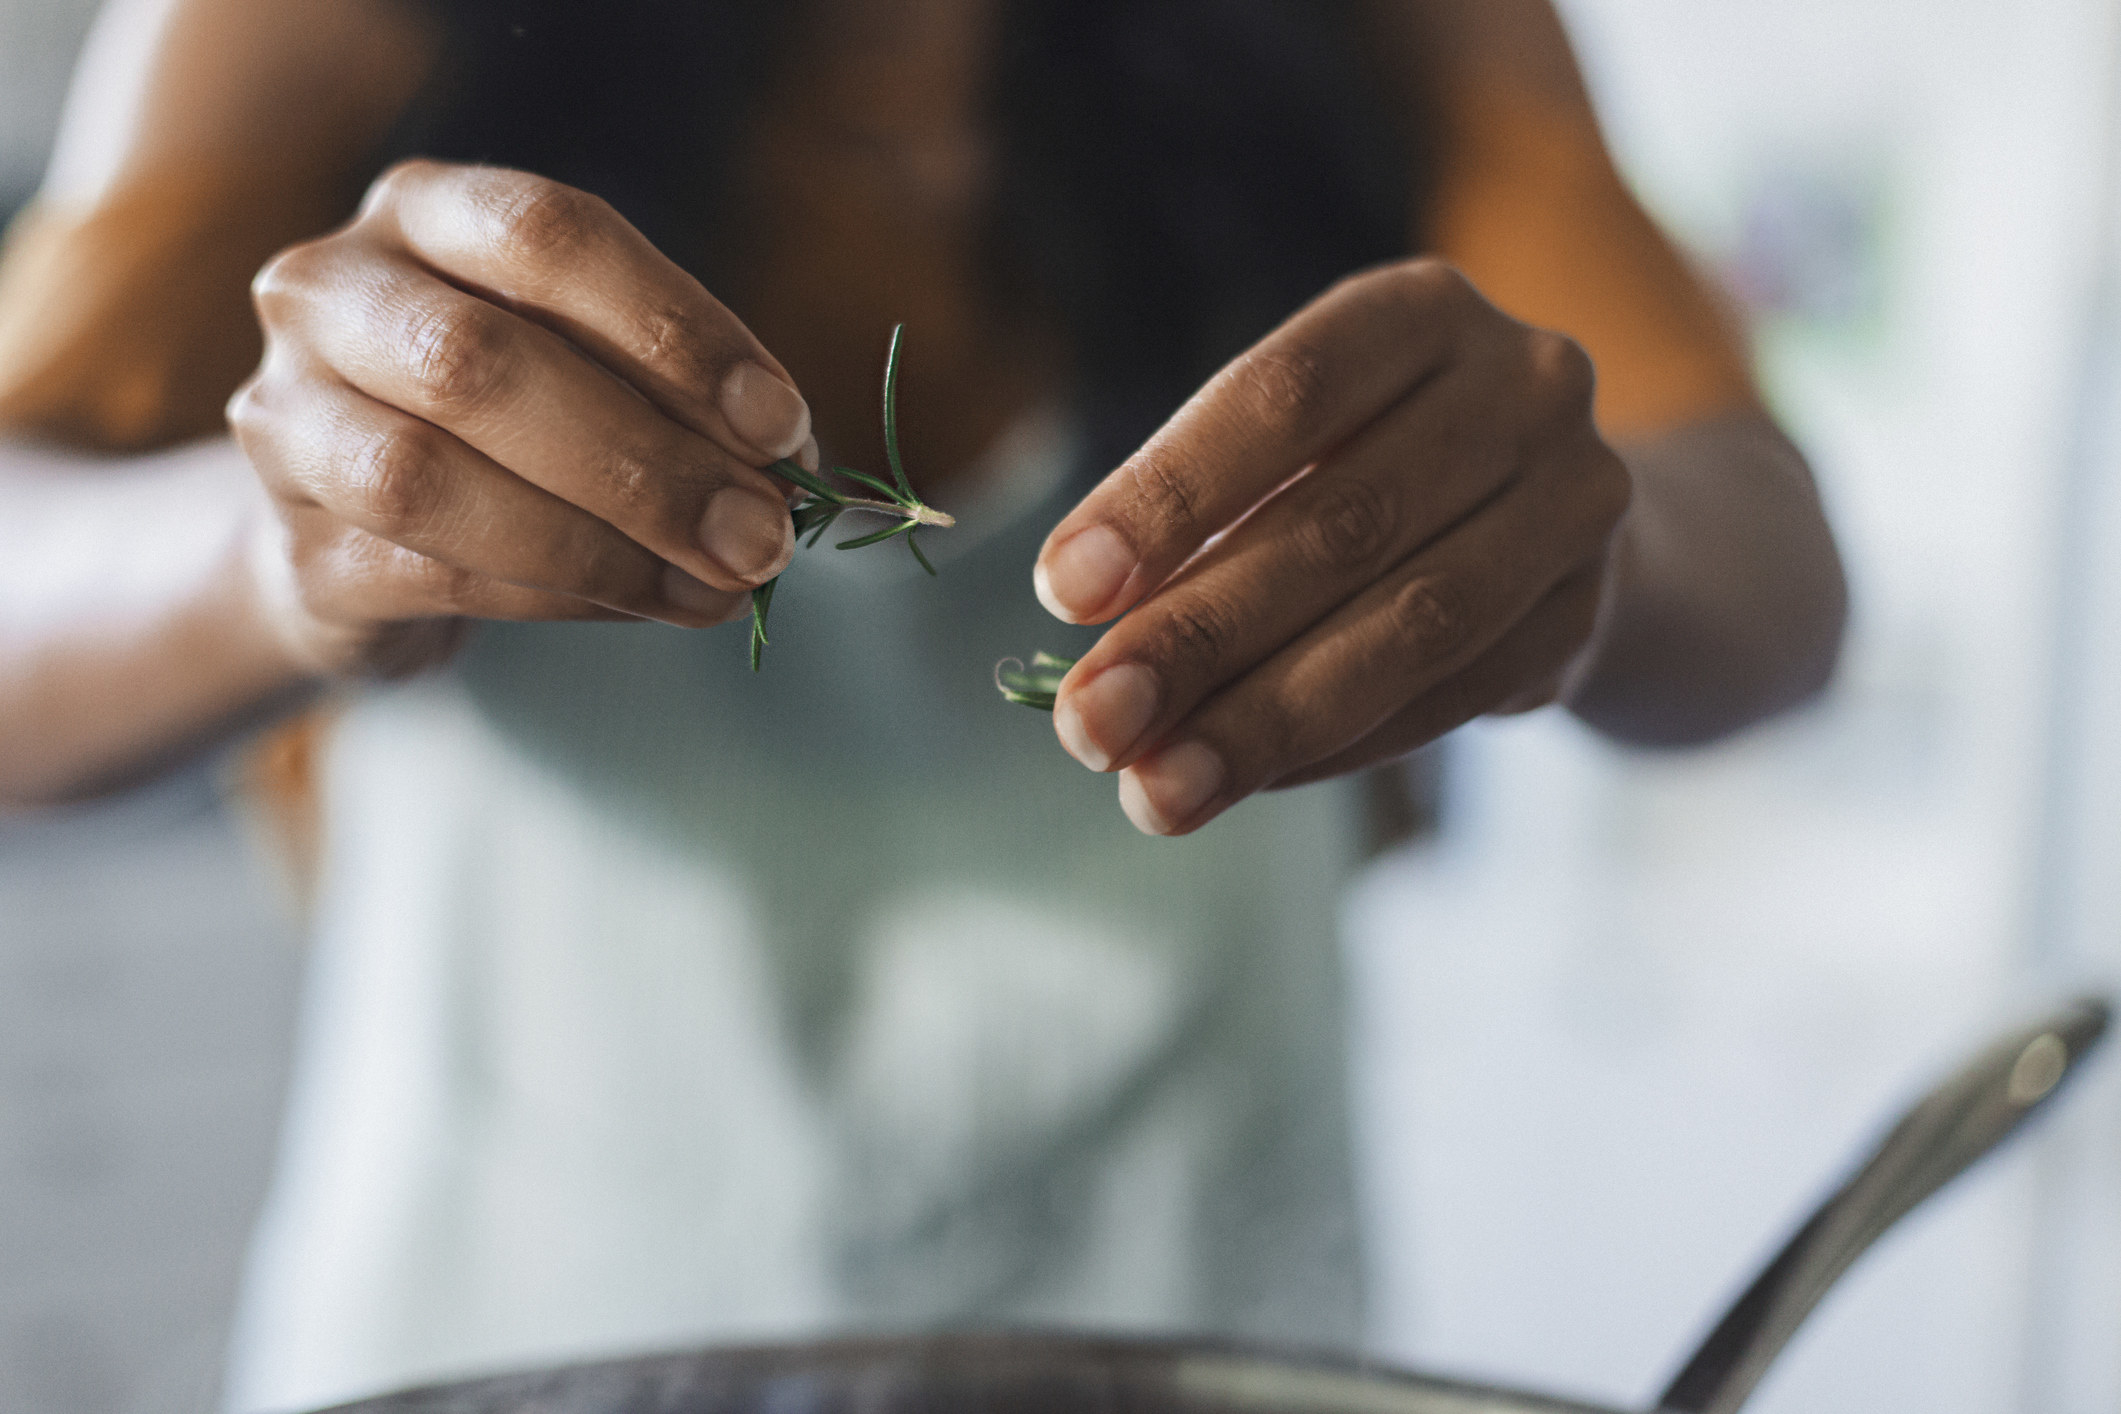 A woman putting fresh rosemary into food